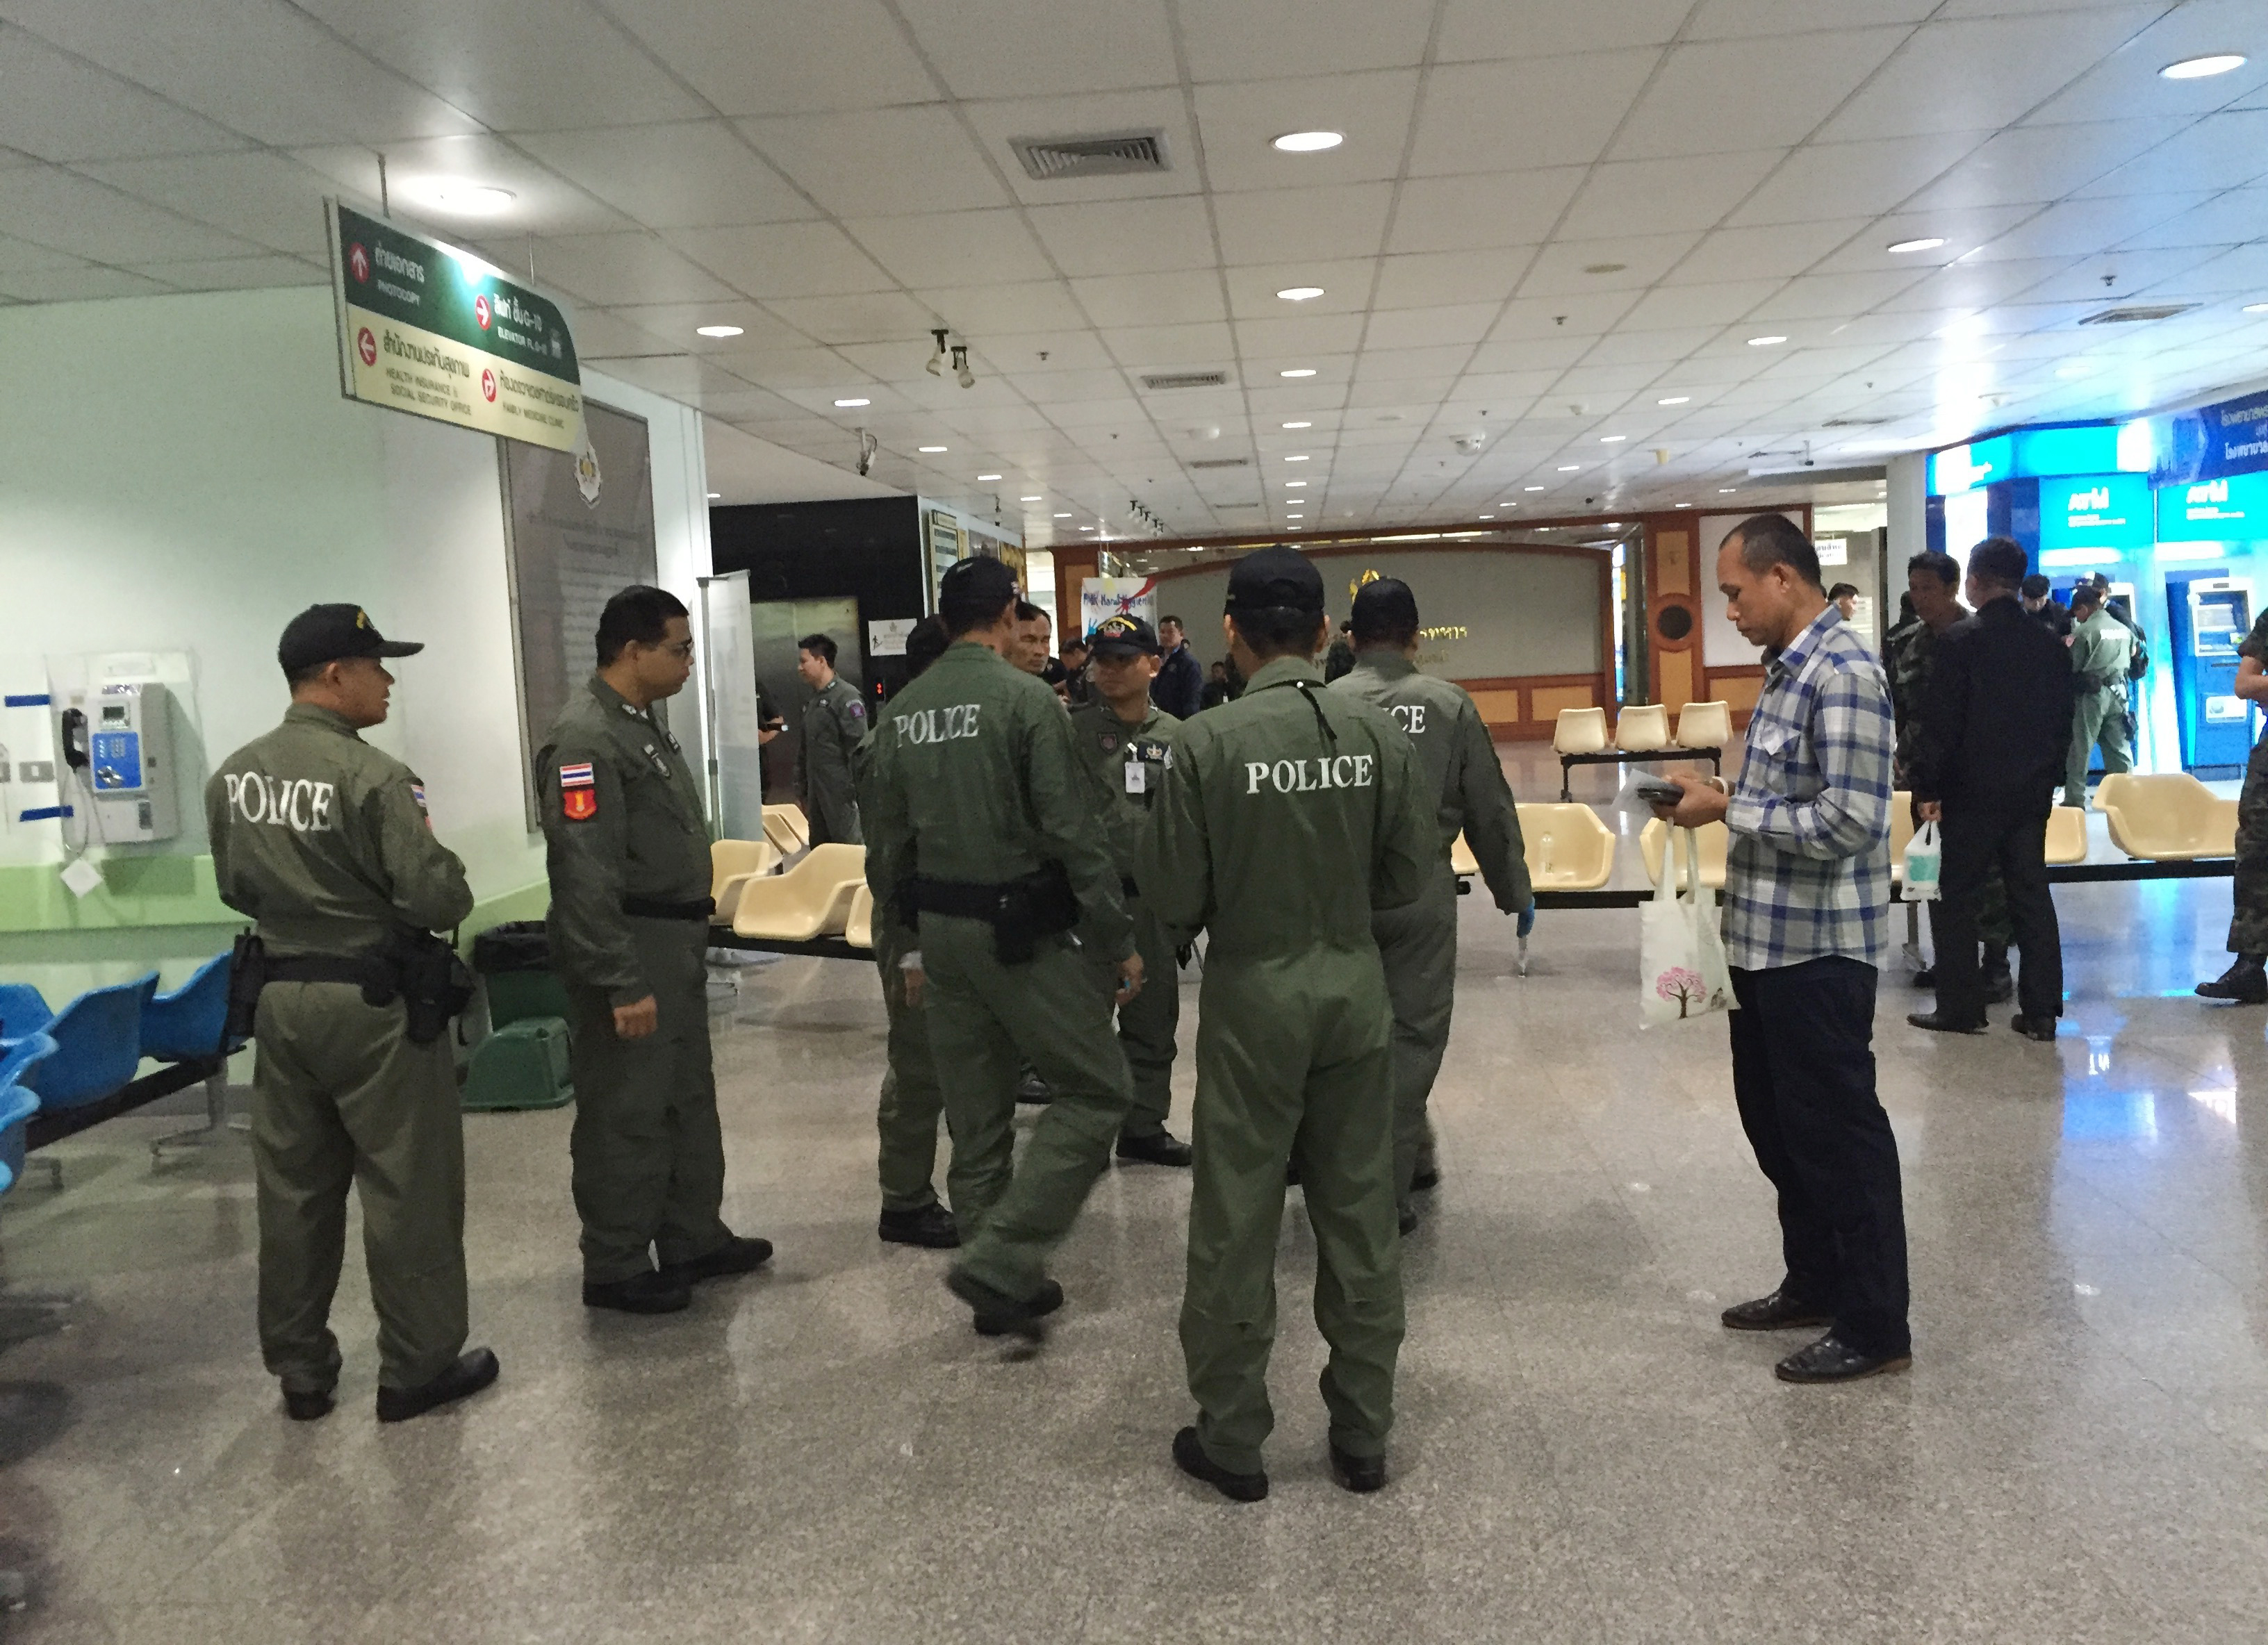 Police investigators work the lobby of Phramongkutklao Hospital, a military-owned hospital that is also open to civilians, in Bangkok after a bomb wounded more than 20 people, on May 22, 2017.